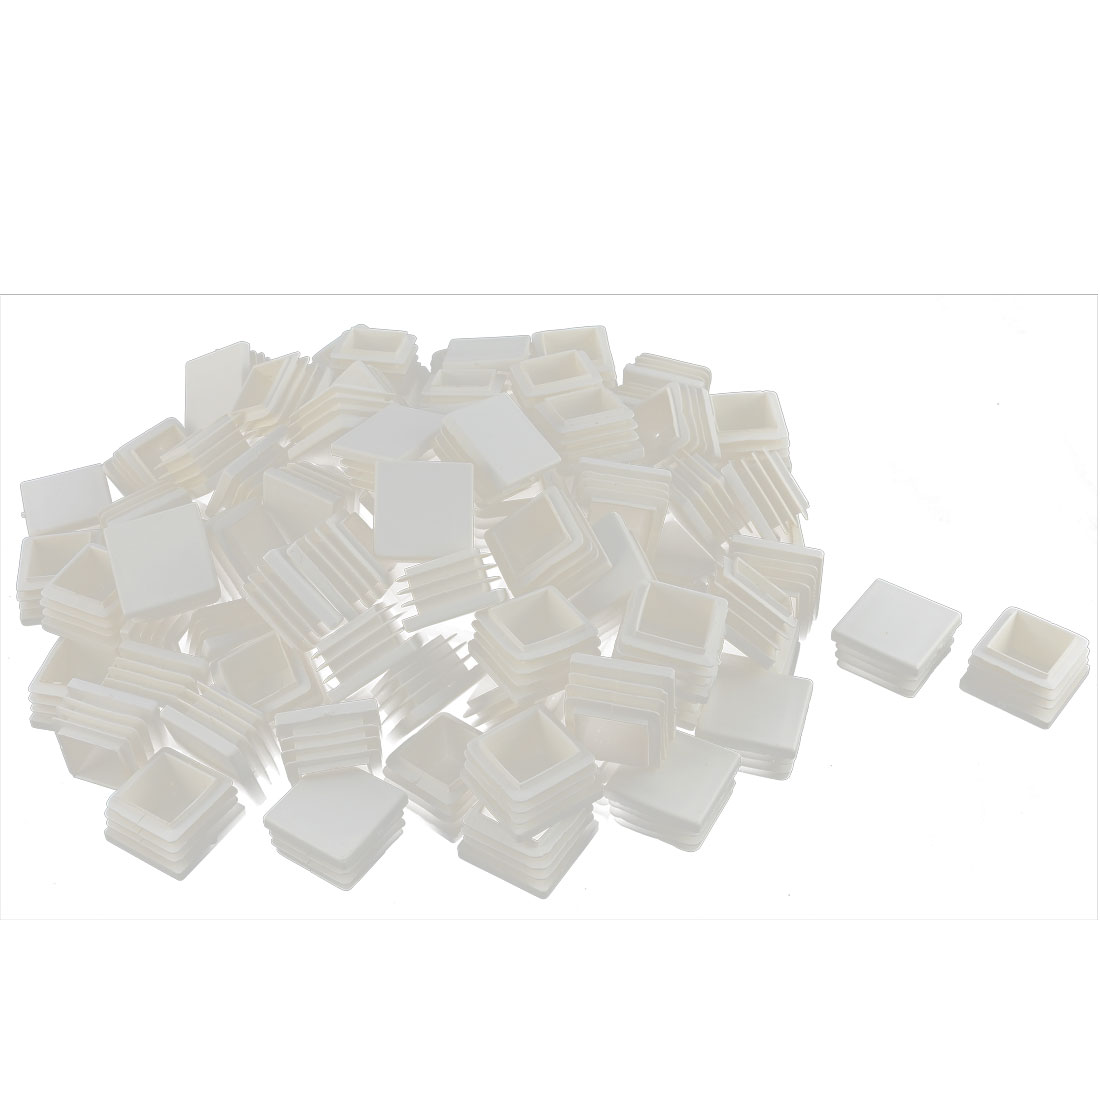 Furniture Table Chair Legs Plastic Square Tube Insert Cap Cover Protector White 25 x 25mm 100pcs